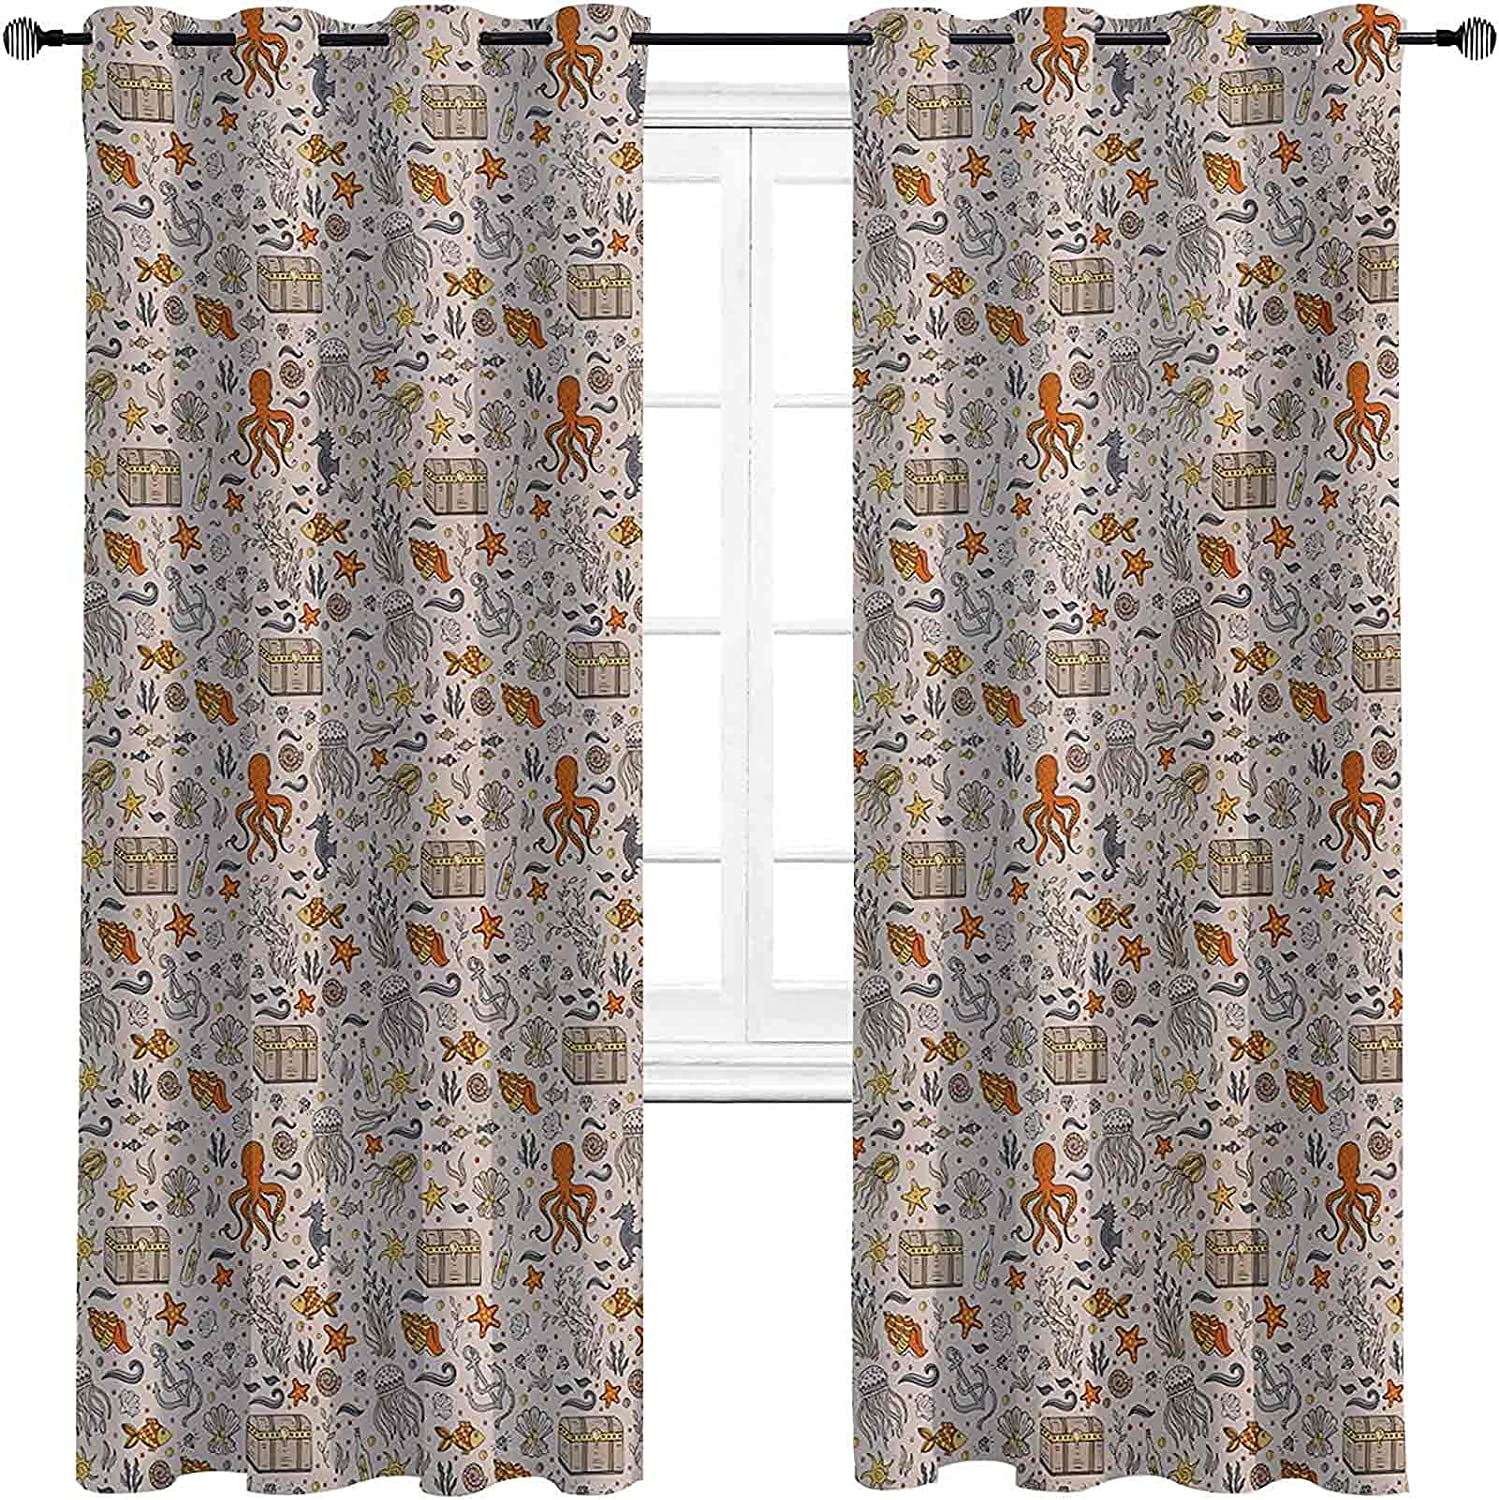 with Grommets blackoutOctopus Curtain Colorado Springs Mall Pa Max 52% OFF Themed Ocean Adventure